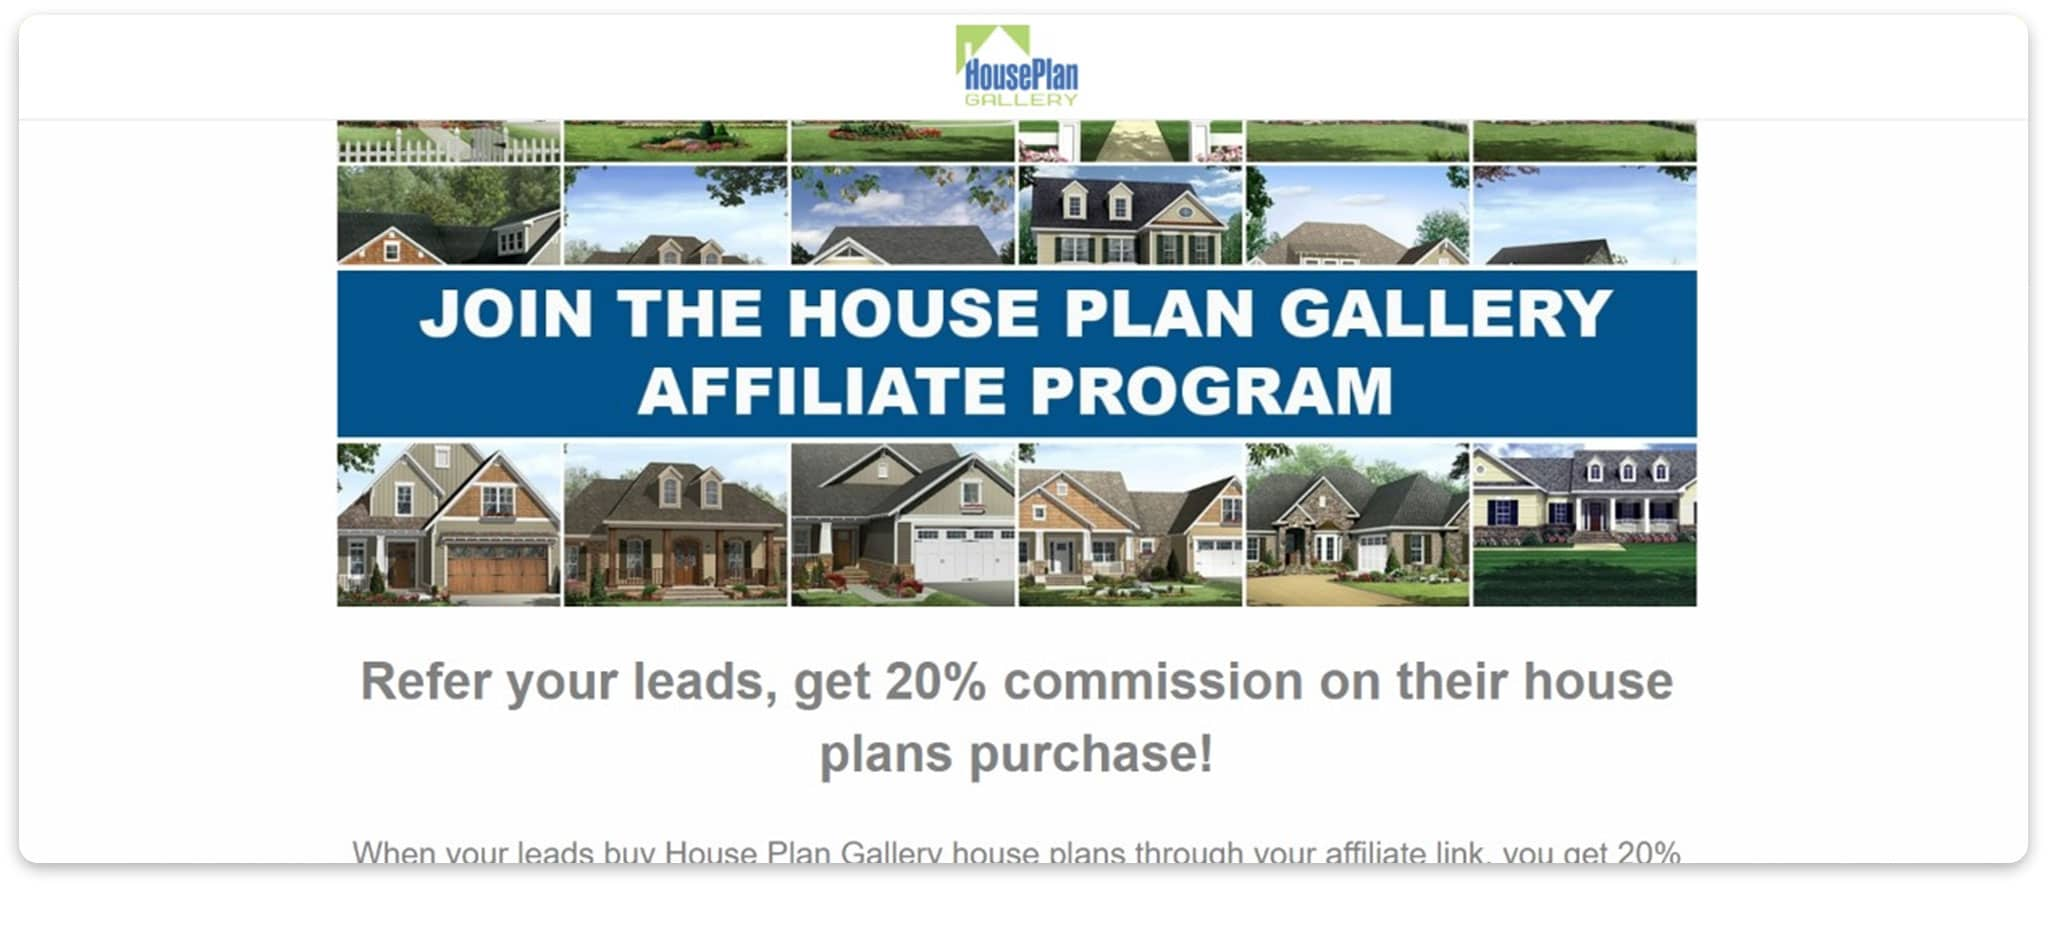 House Plan Gallery affiliate